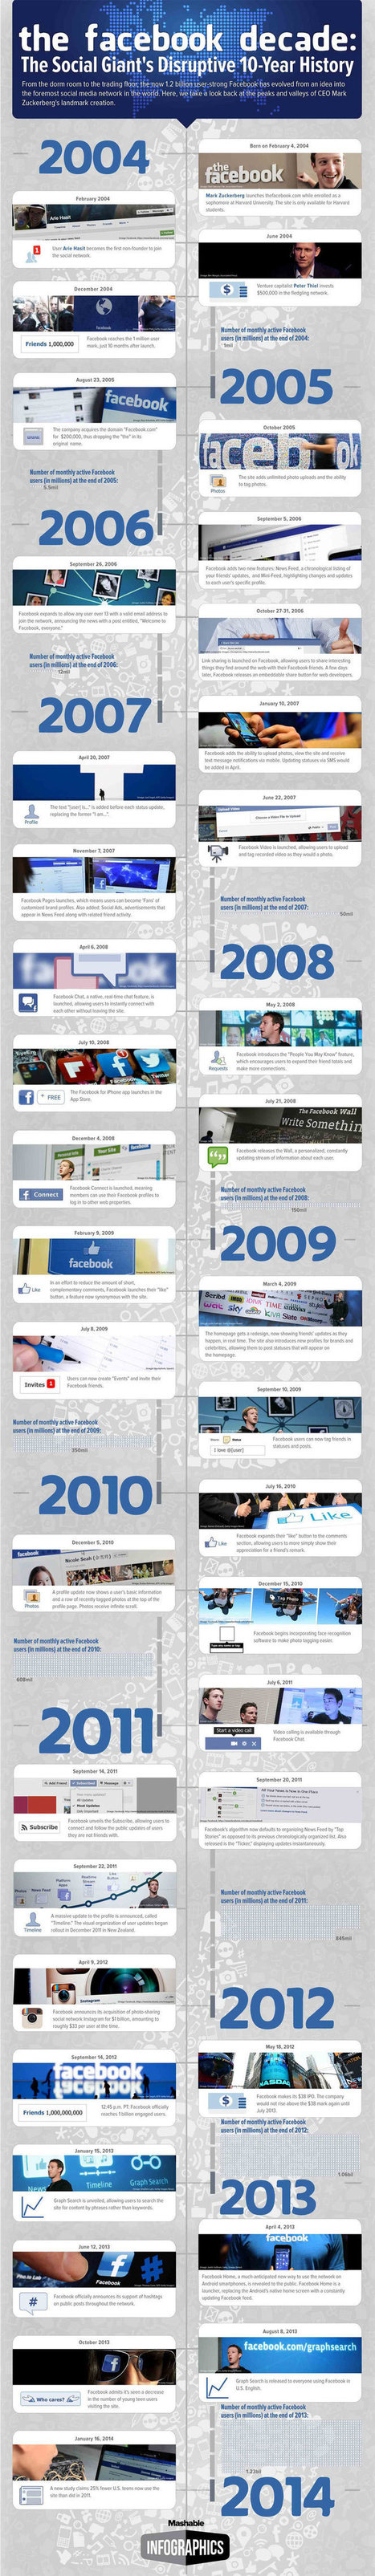 10 Years of Facebook, the history of a Social Giant an infographic | Technology Scoops | Scoop.it